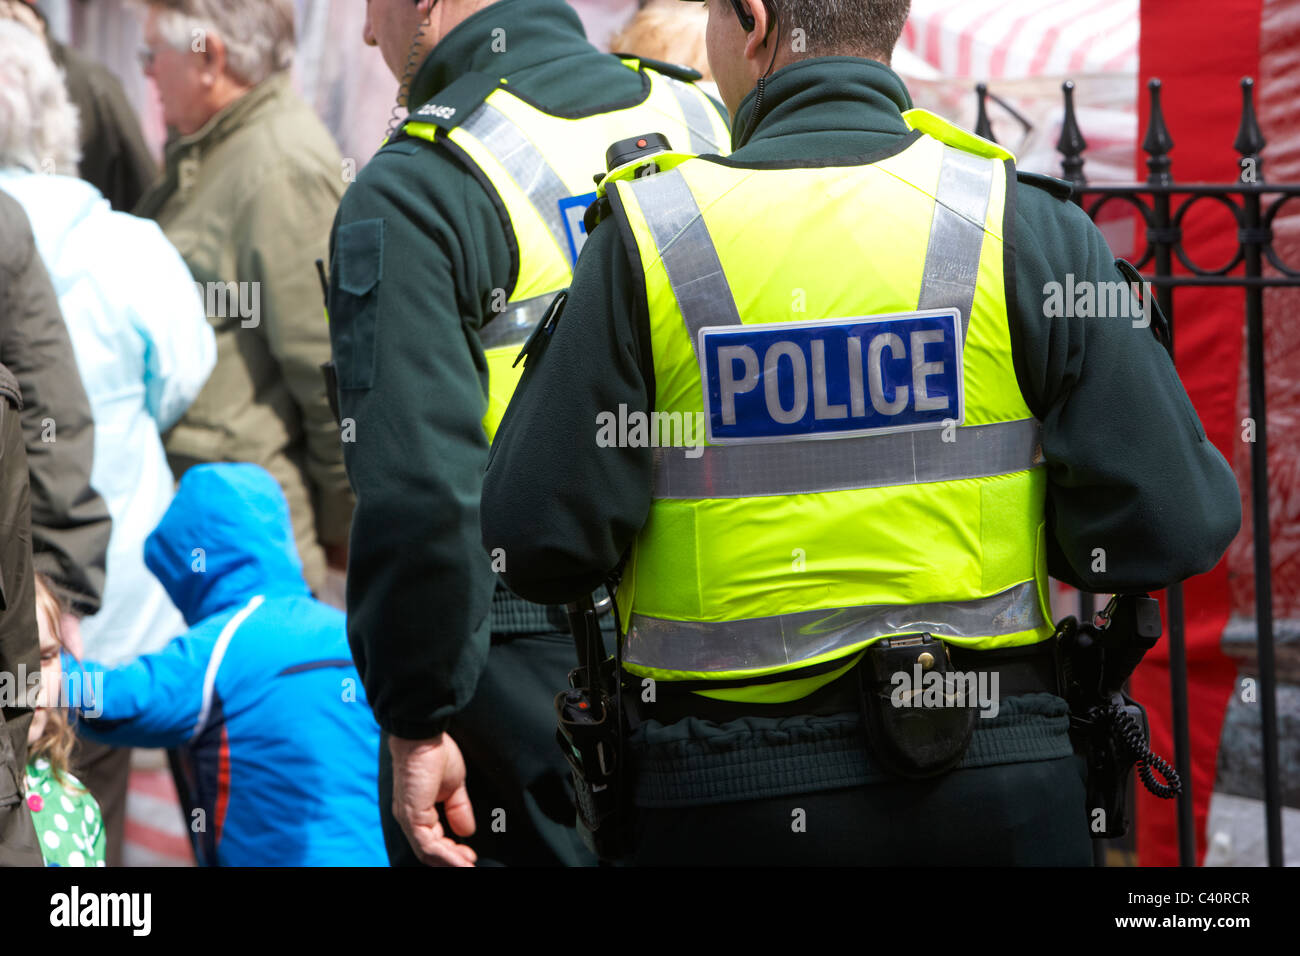 armed police officers wearing stab proof bulletproof vests walk through the crowd - Stock Image